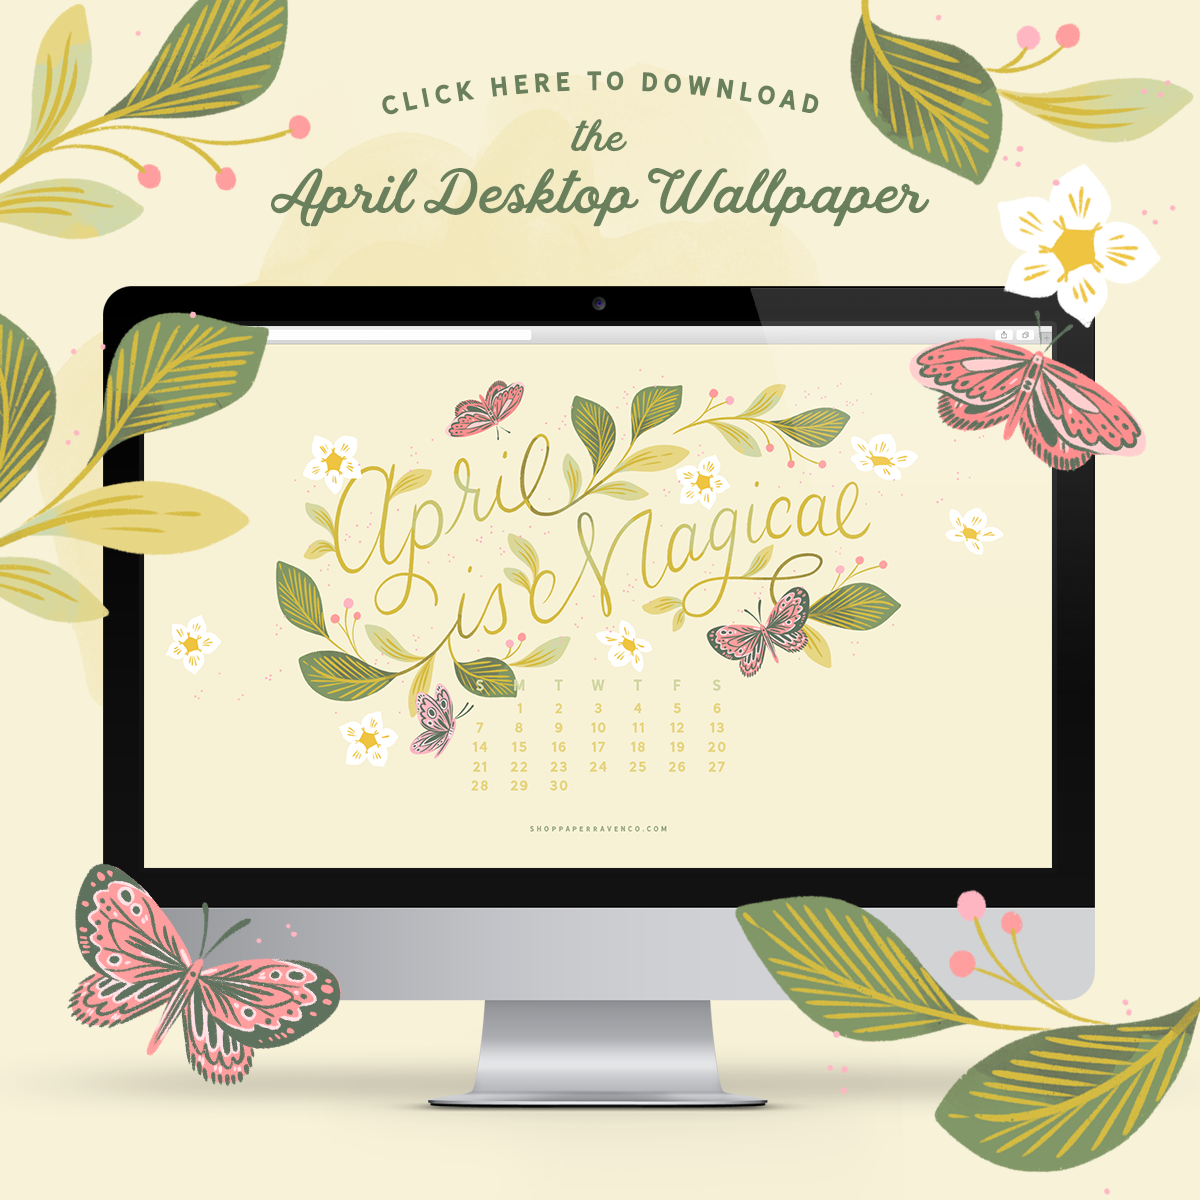 April 2019 Illustrated Desktop Wallpaper | www.ShopPaperRavenCo.com #dressyourtech #desktopbackground